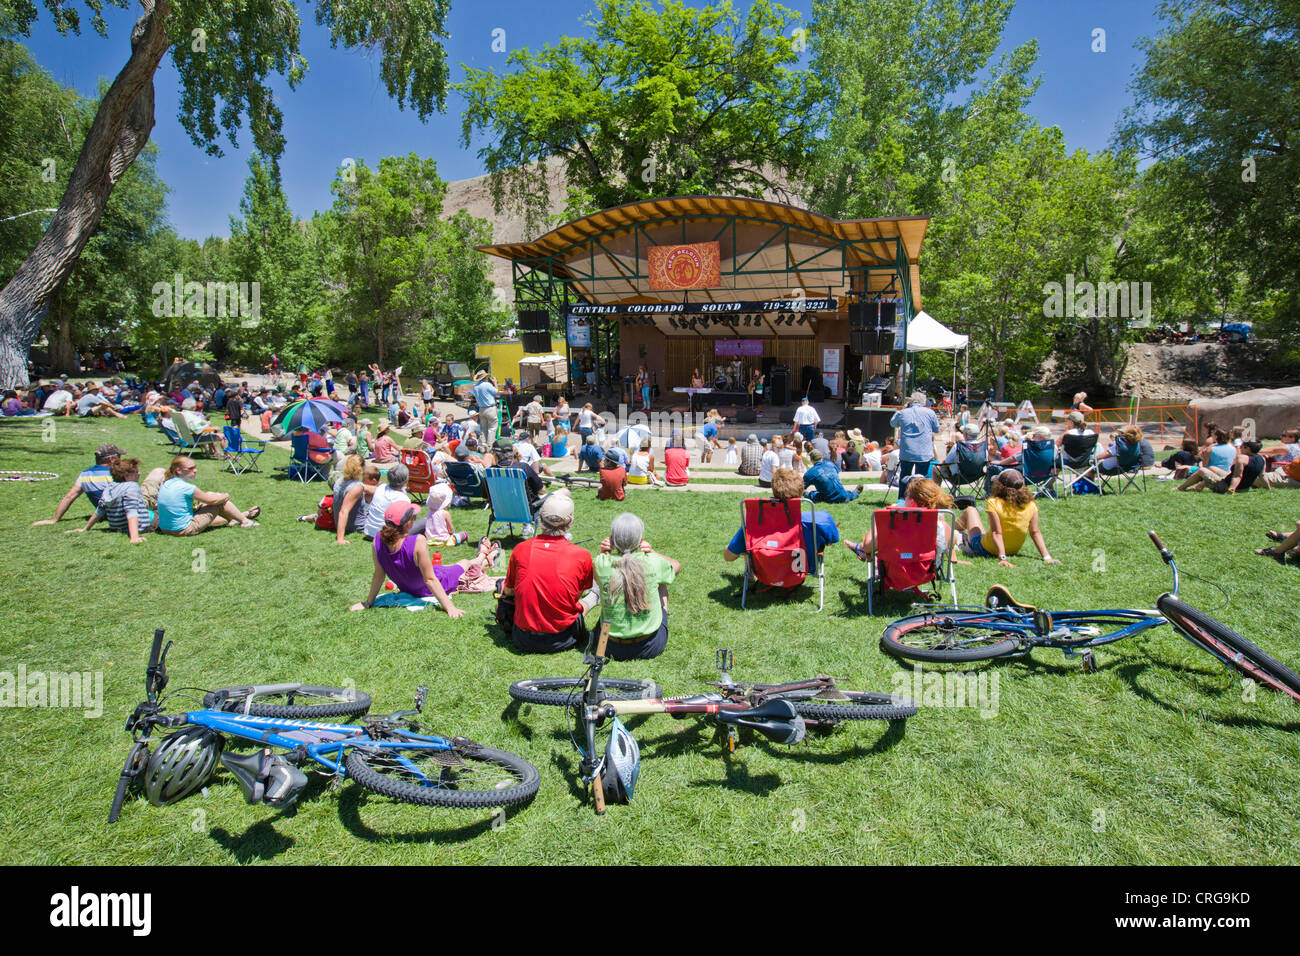 The Red Bandana, a music band of four young girls plays during the annual Fibark Festival in Riverside Park, Salida, - Stock Image